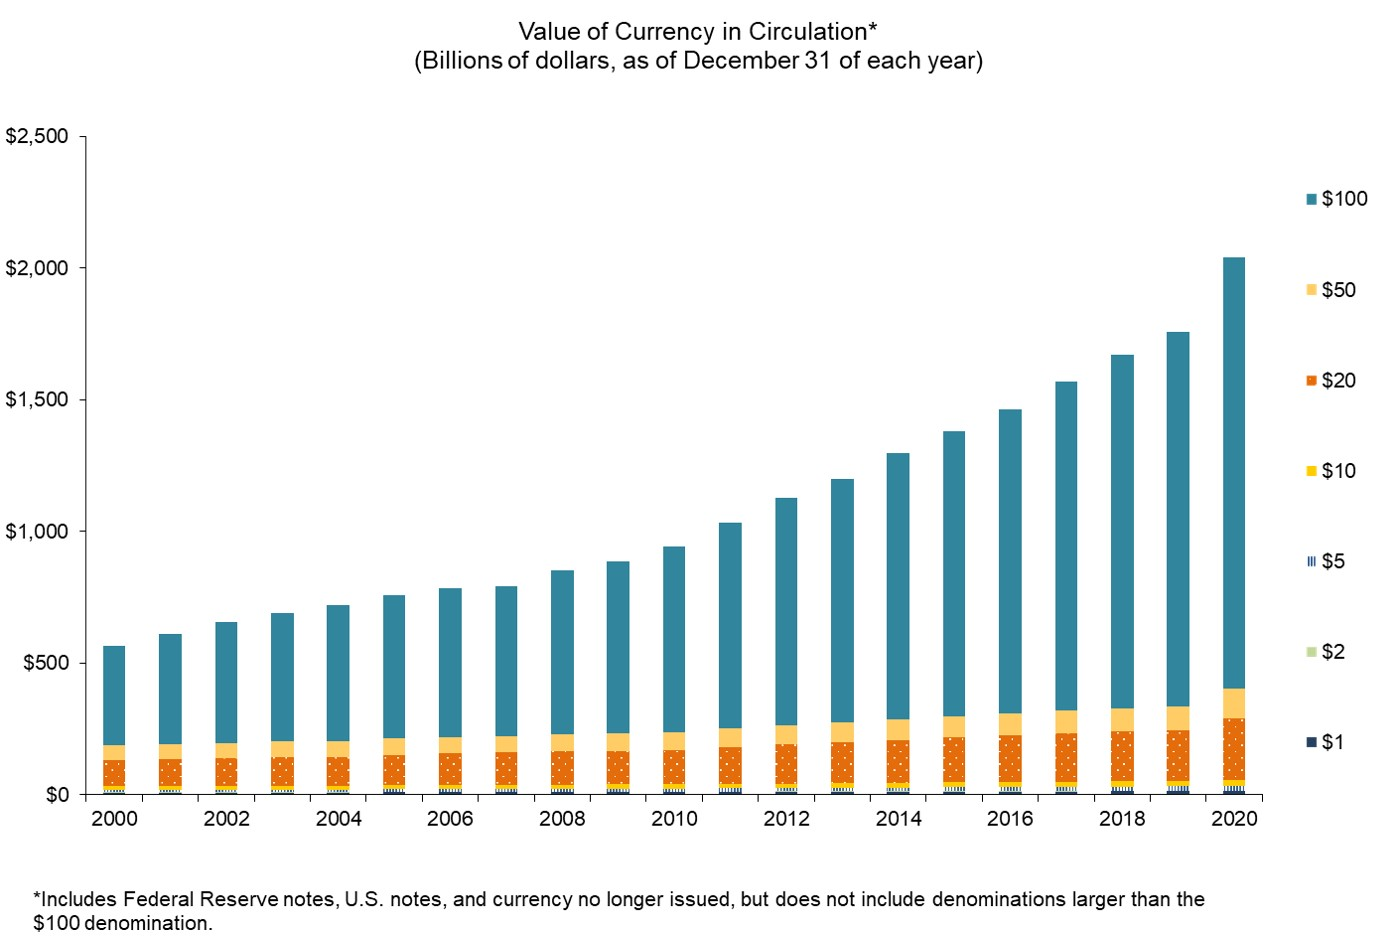 Currency In Circulation Value